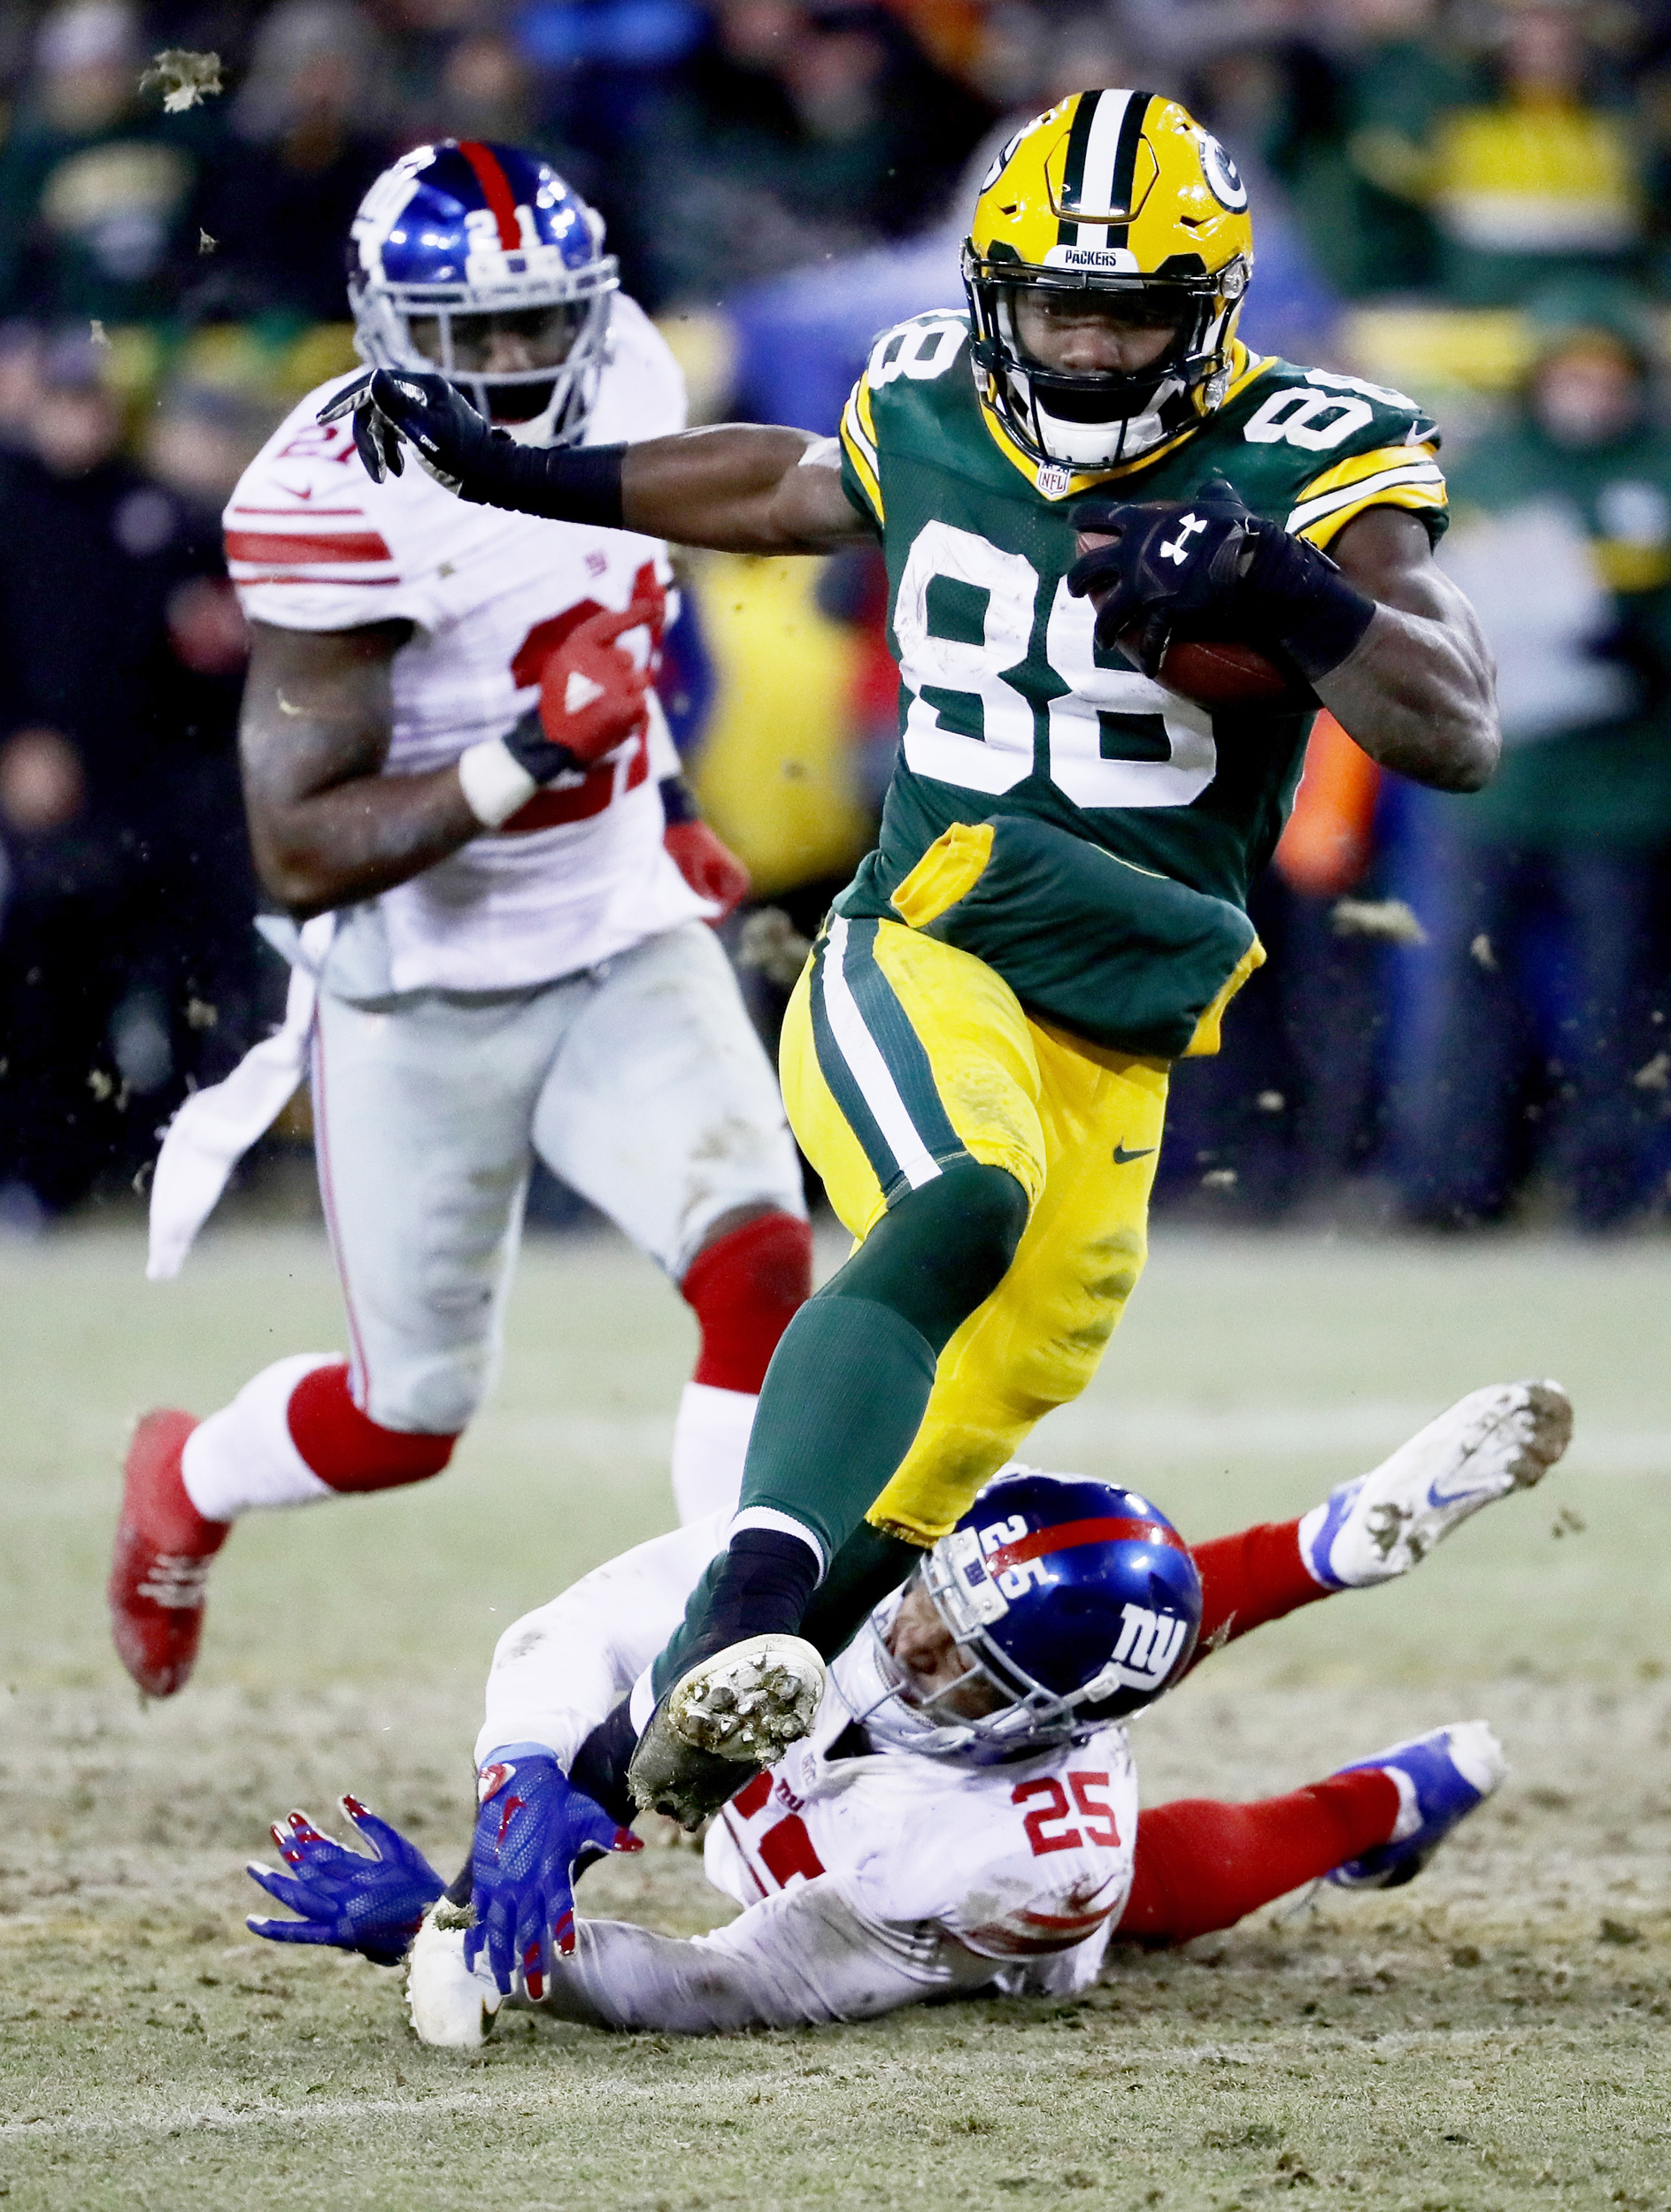 Ty Montgomery #88 of the Green Bay Packers escapes a tackle attempt by Leon Hall #25 of the New York Giants in the fourth quarter during the NFC Wild Card game at Lambeau Field on January 8, 2017 in Green Bay, Wisconsin.